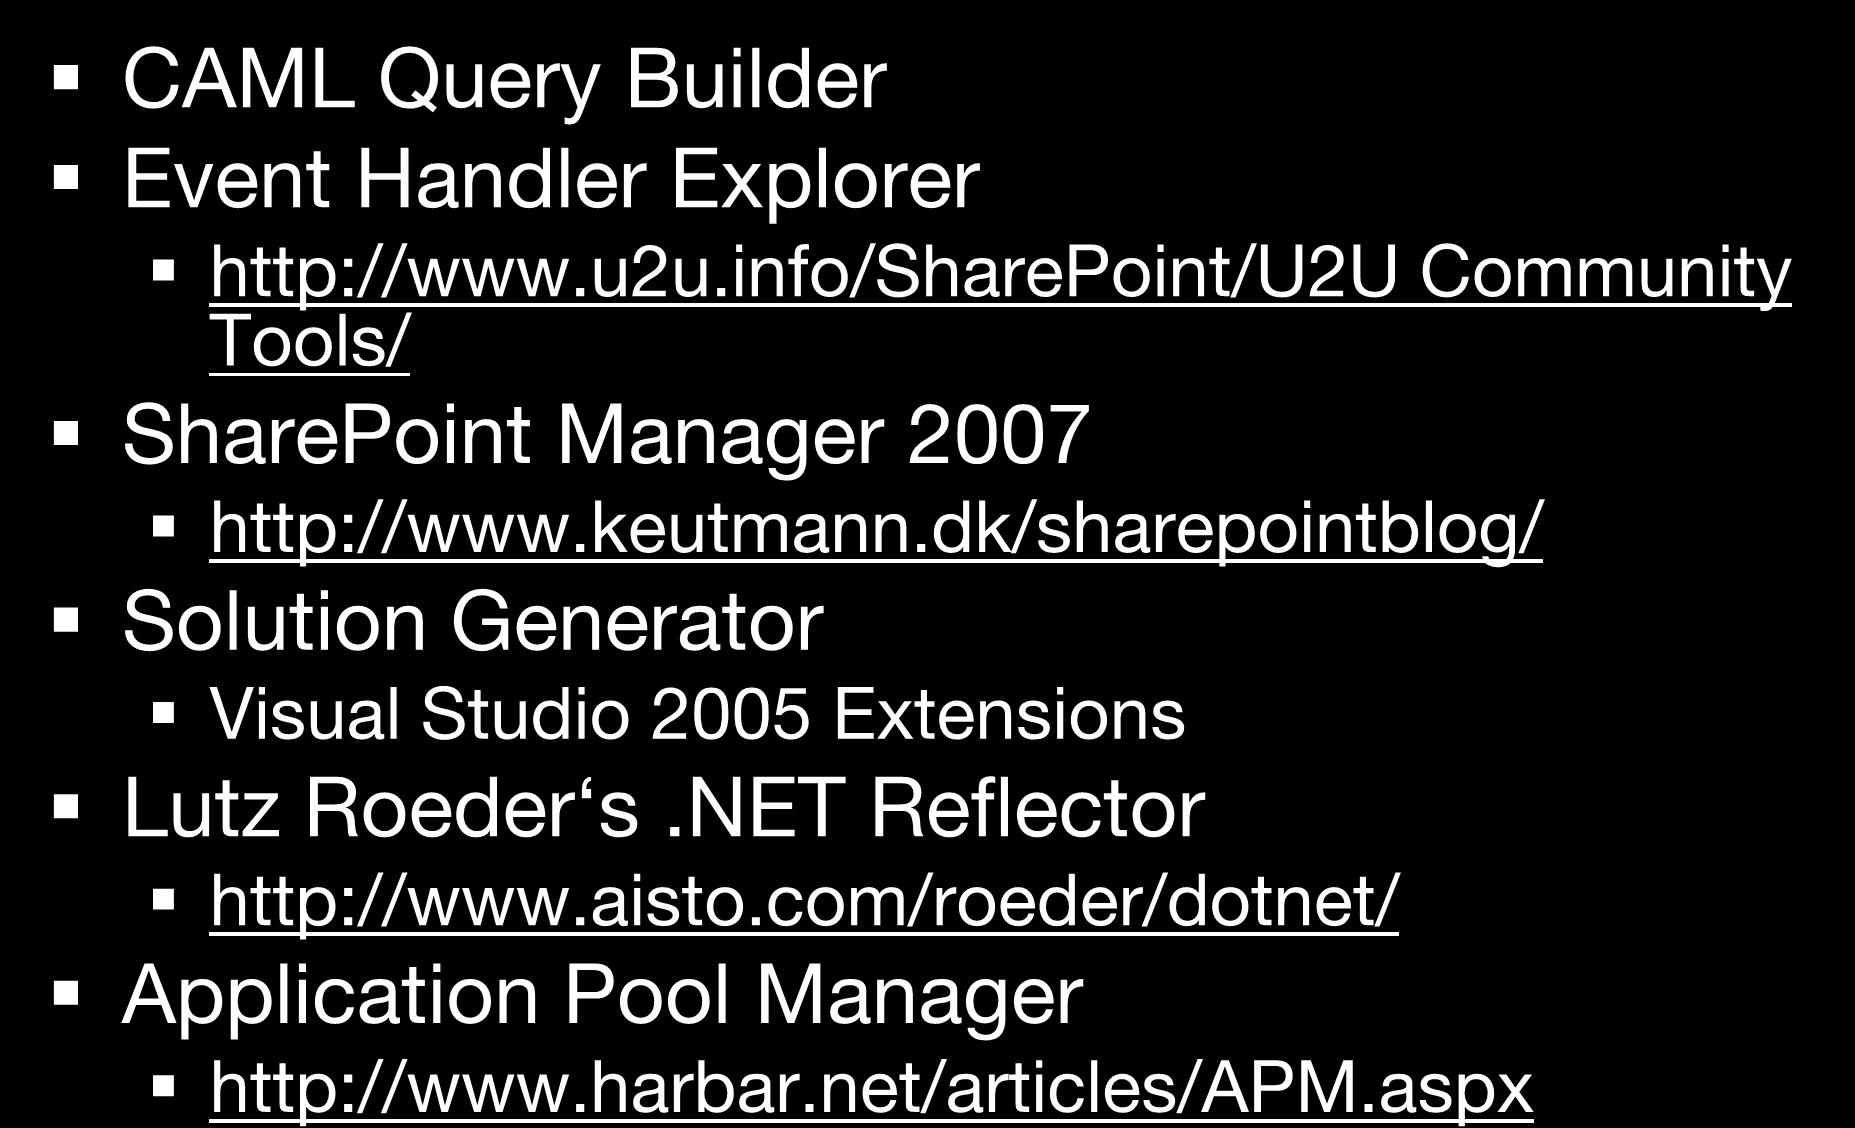 Tools CAML Query Builder Event Handler Explorer http://www.u2u.info/sharepoint/u2u Community Tools/ SharePoint Manager 2007 http://www.keutmann.